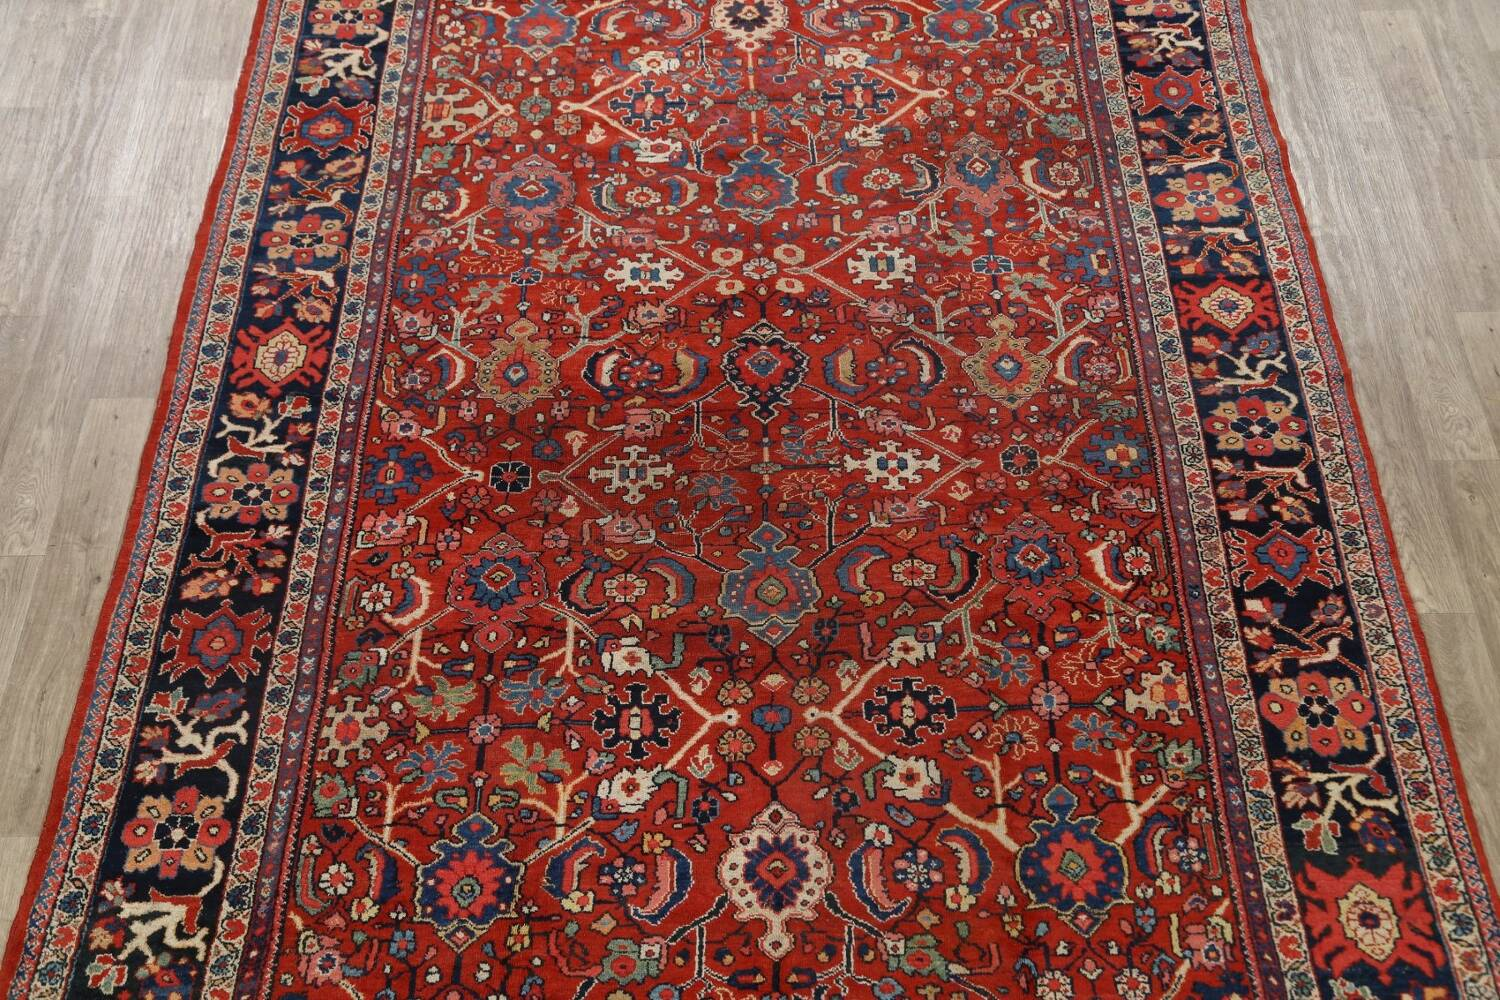 Antique Vegetable Dye Sultanabad Persian Area Rug 9x12 image 3